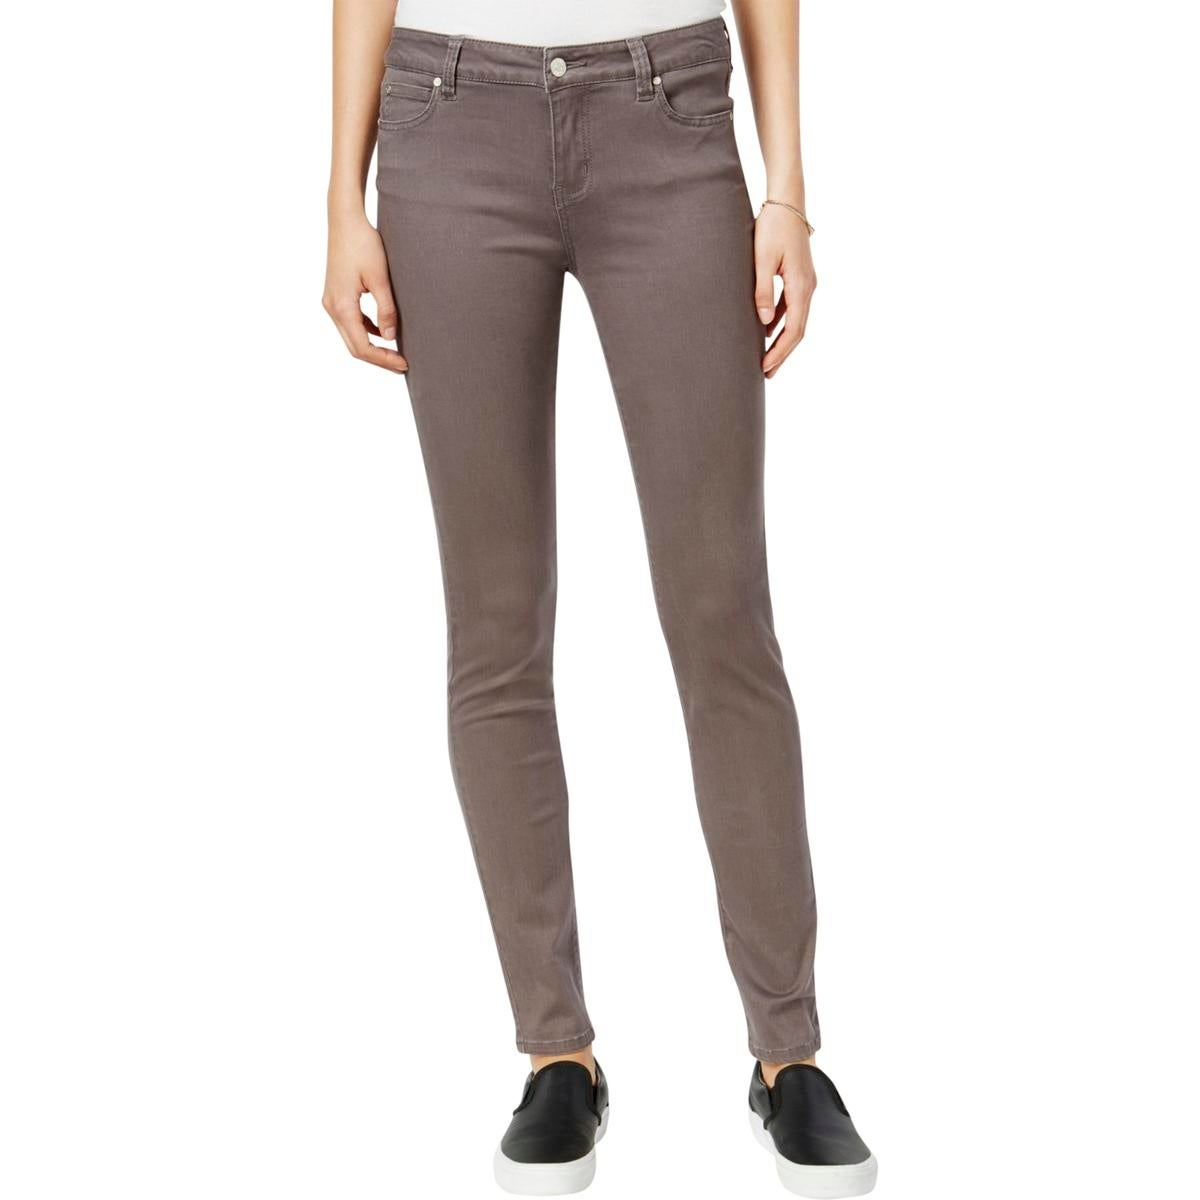 f2cc85813f2 Shop Celebrity Pink Womens Juniors Jayden Skinny Jeans Colored Mid ...